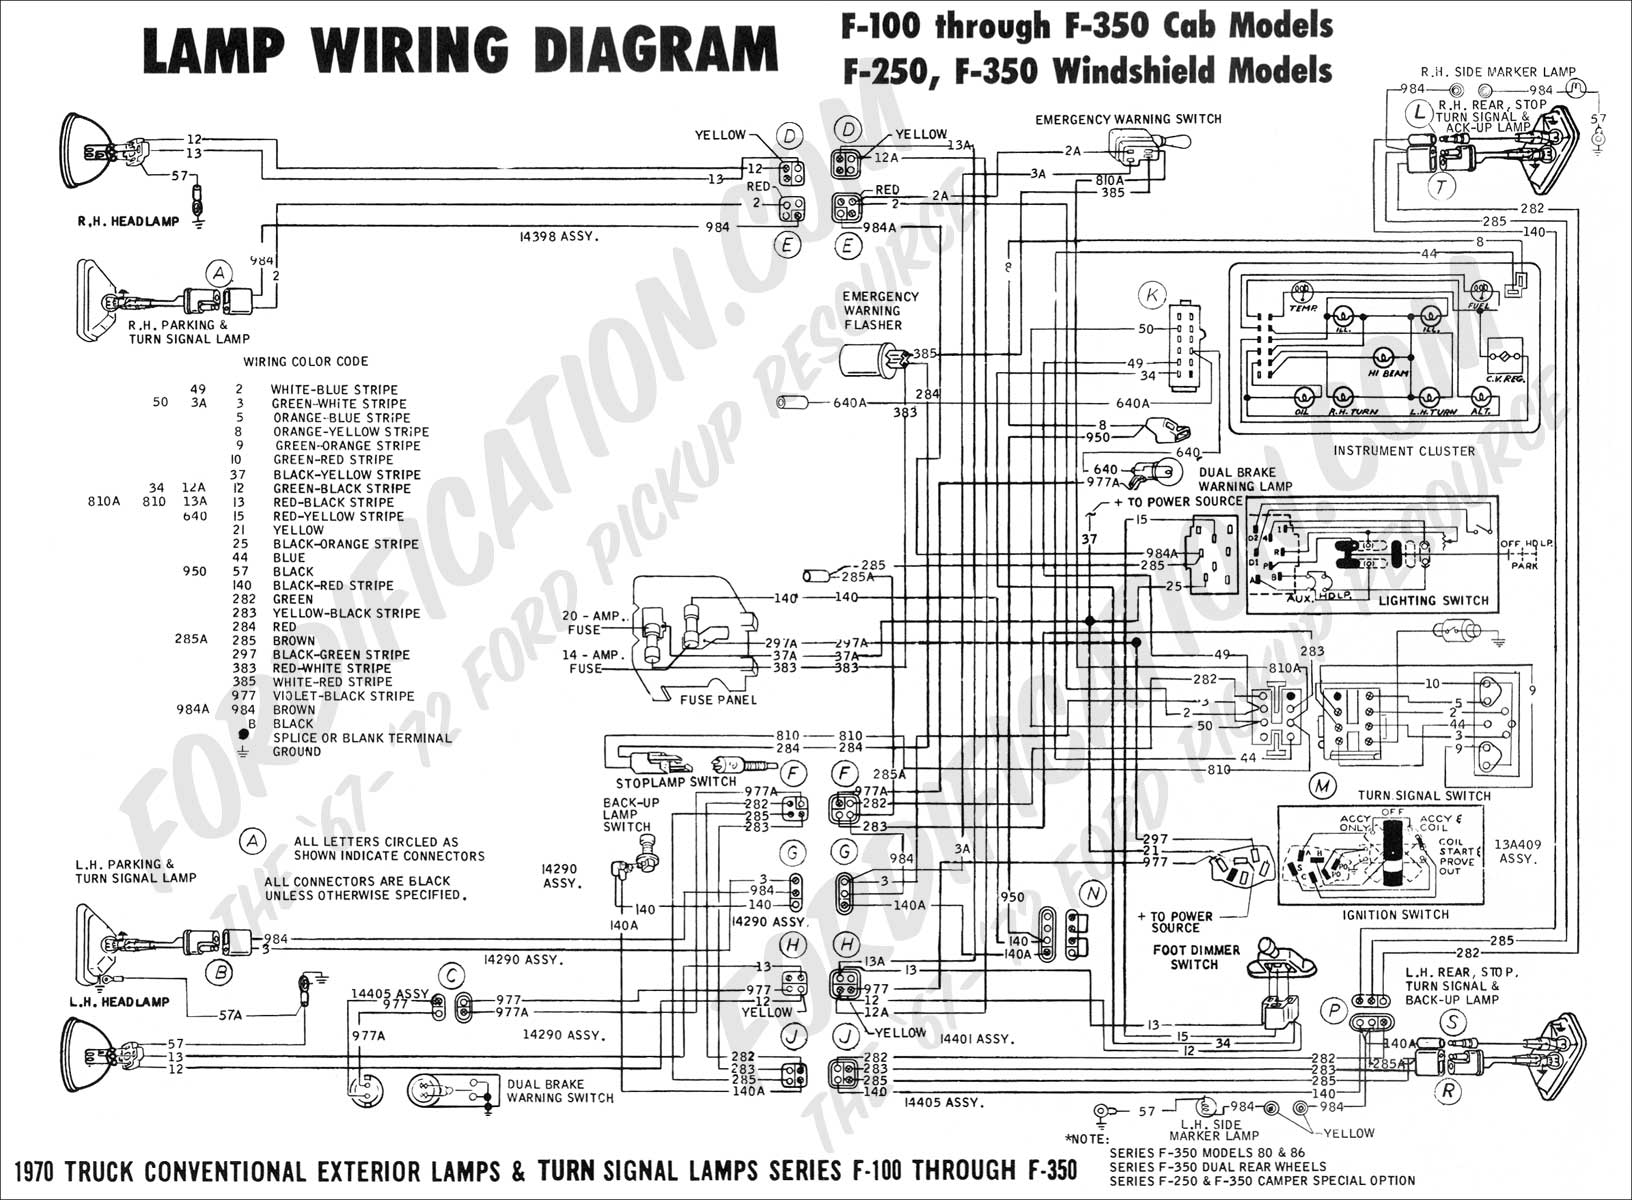 ford truck technical drawings and schematics section h wiring diagrams 1999 ford  f250 fuse diagram youtube 1999 ford f750 fuse diagram